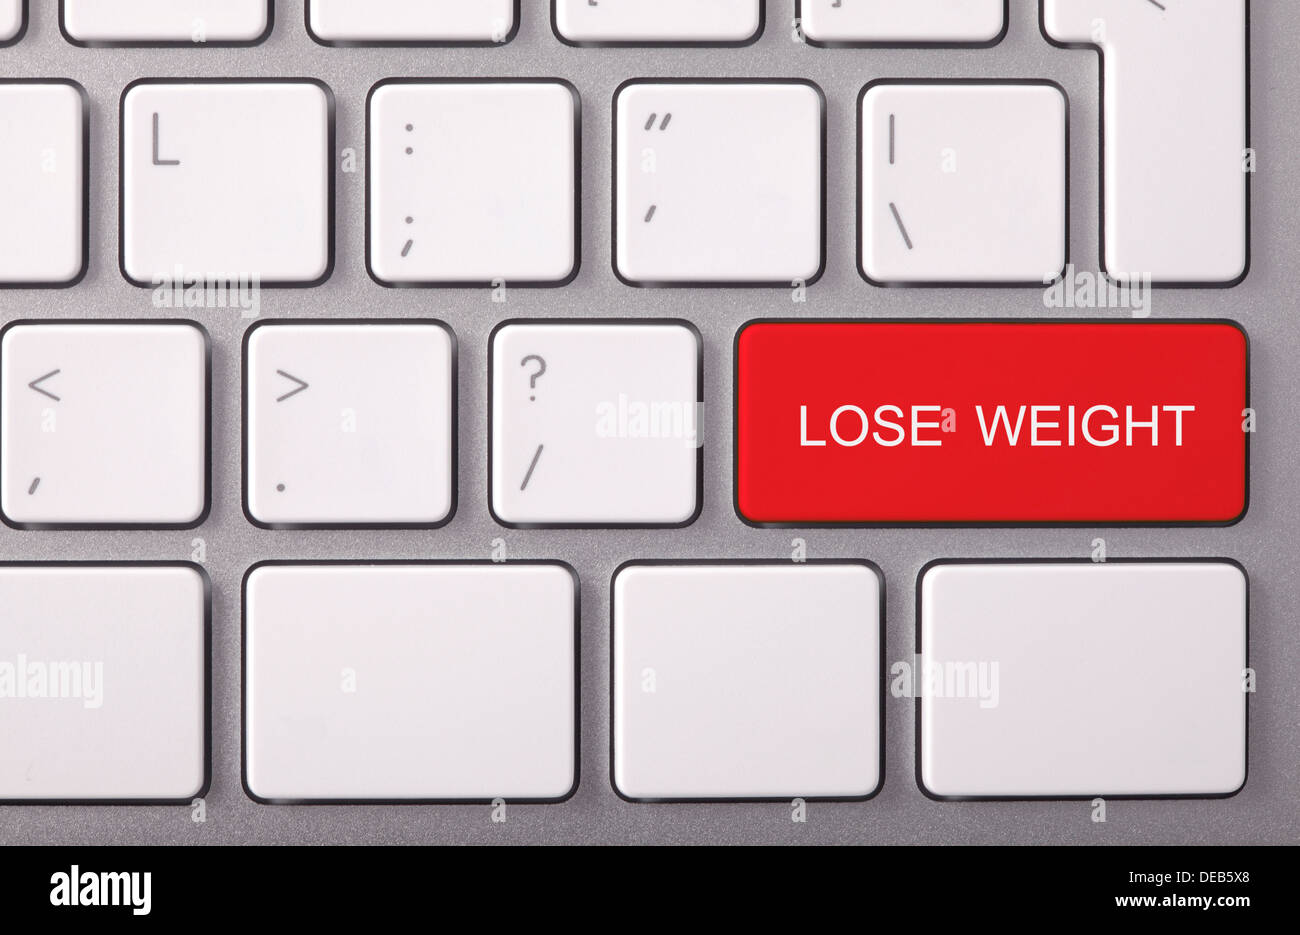 Laptop keyboard and red key 'LOSE WEIGHT' on it - Stock Image